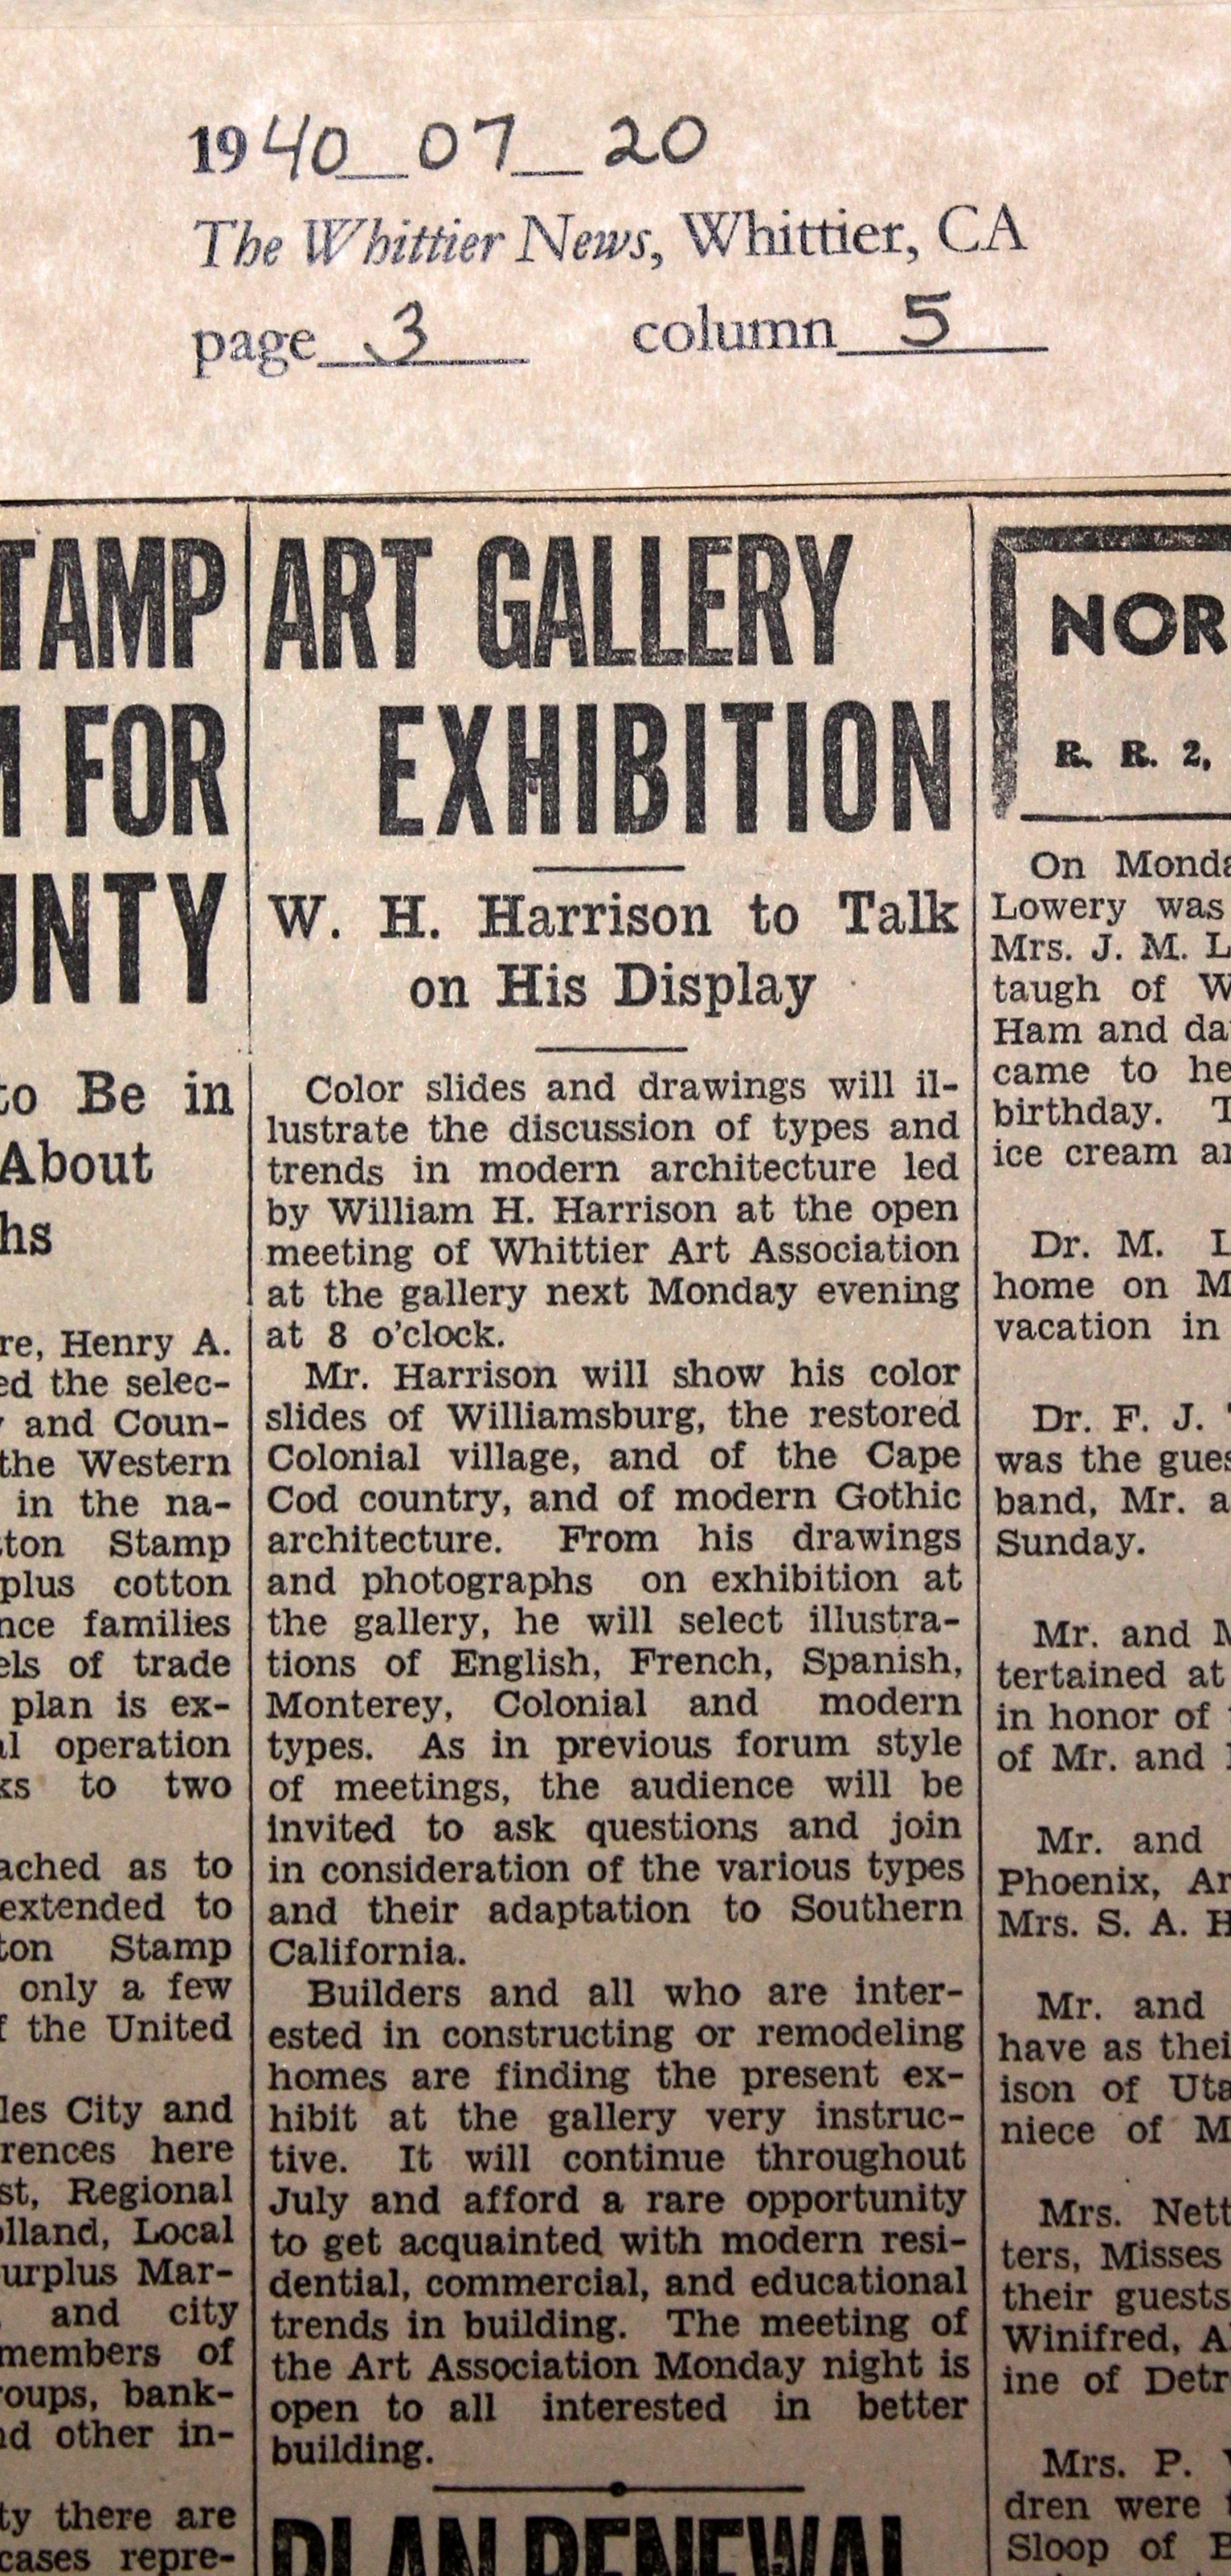 1940_07_20 WN  Wm. Harrison speaks on architecture edited.jpg